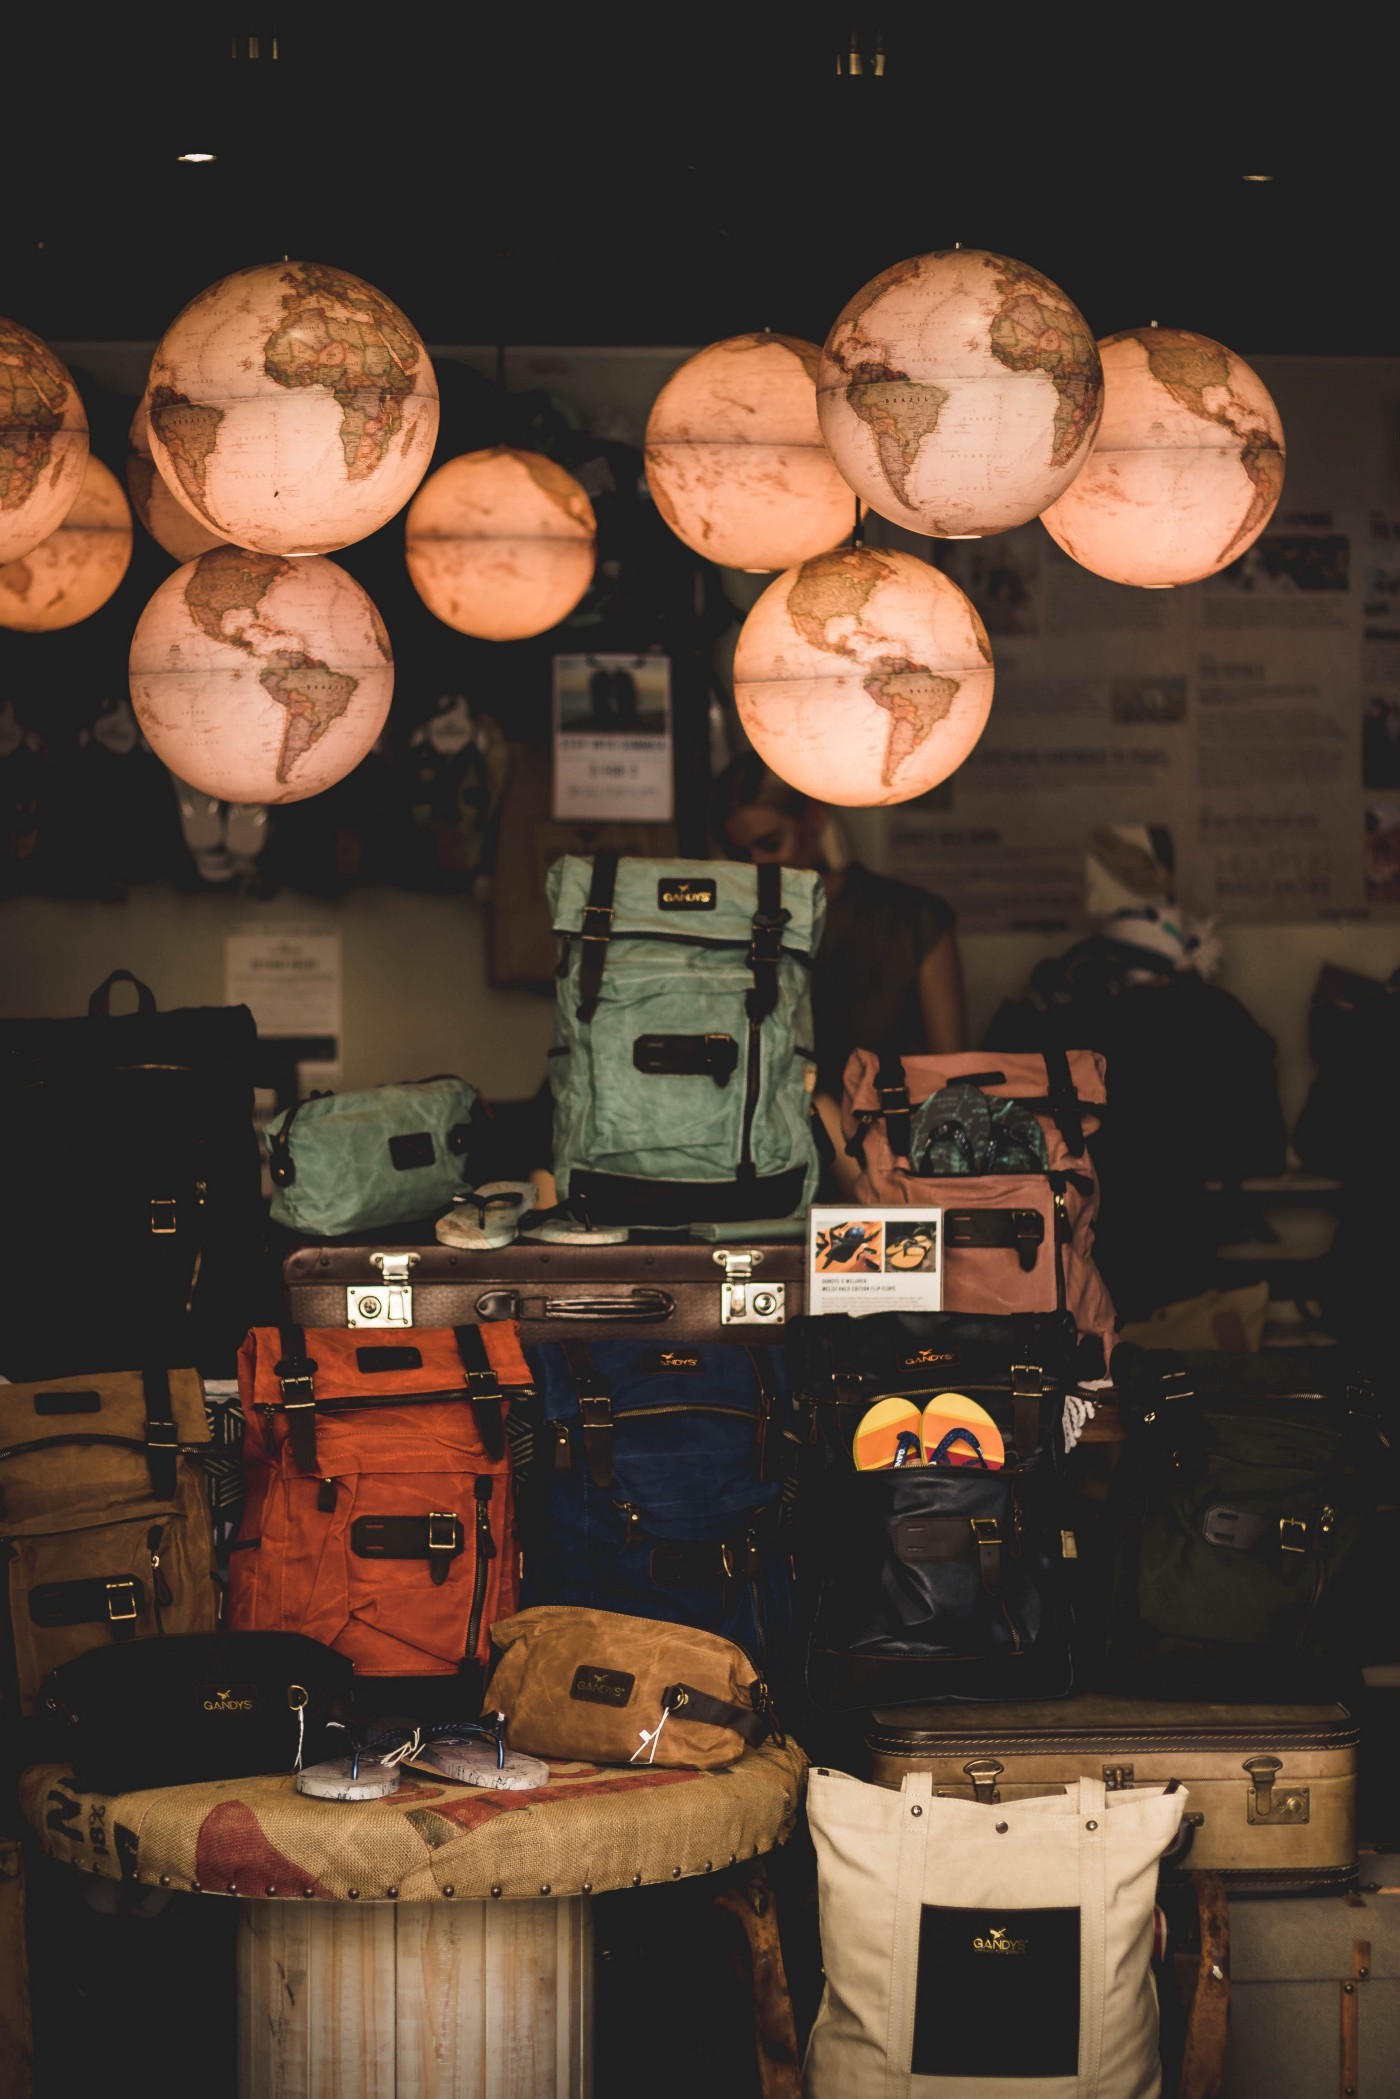 A bunch of suitcases on display